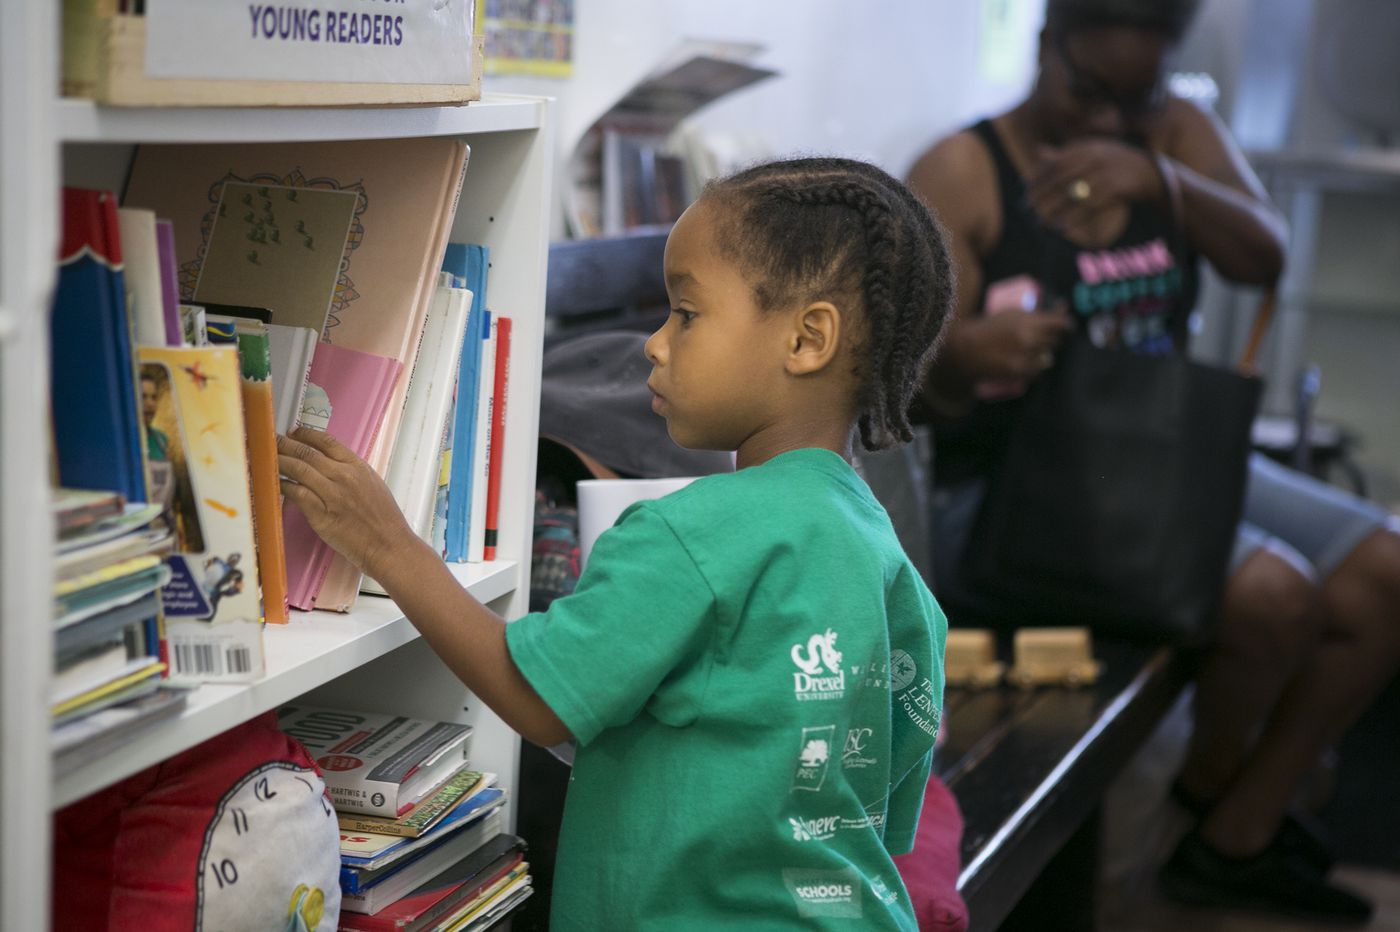 Two-thirds of Philly kids can't read at grade level. Can a library in a barbershop change that?